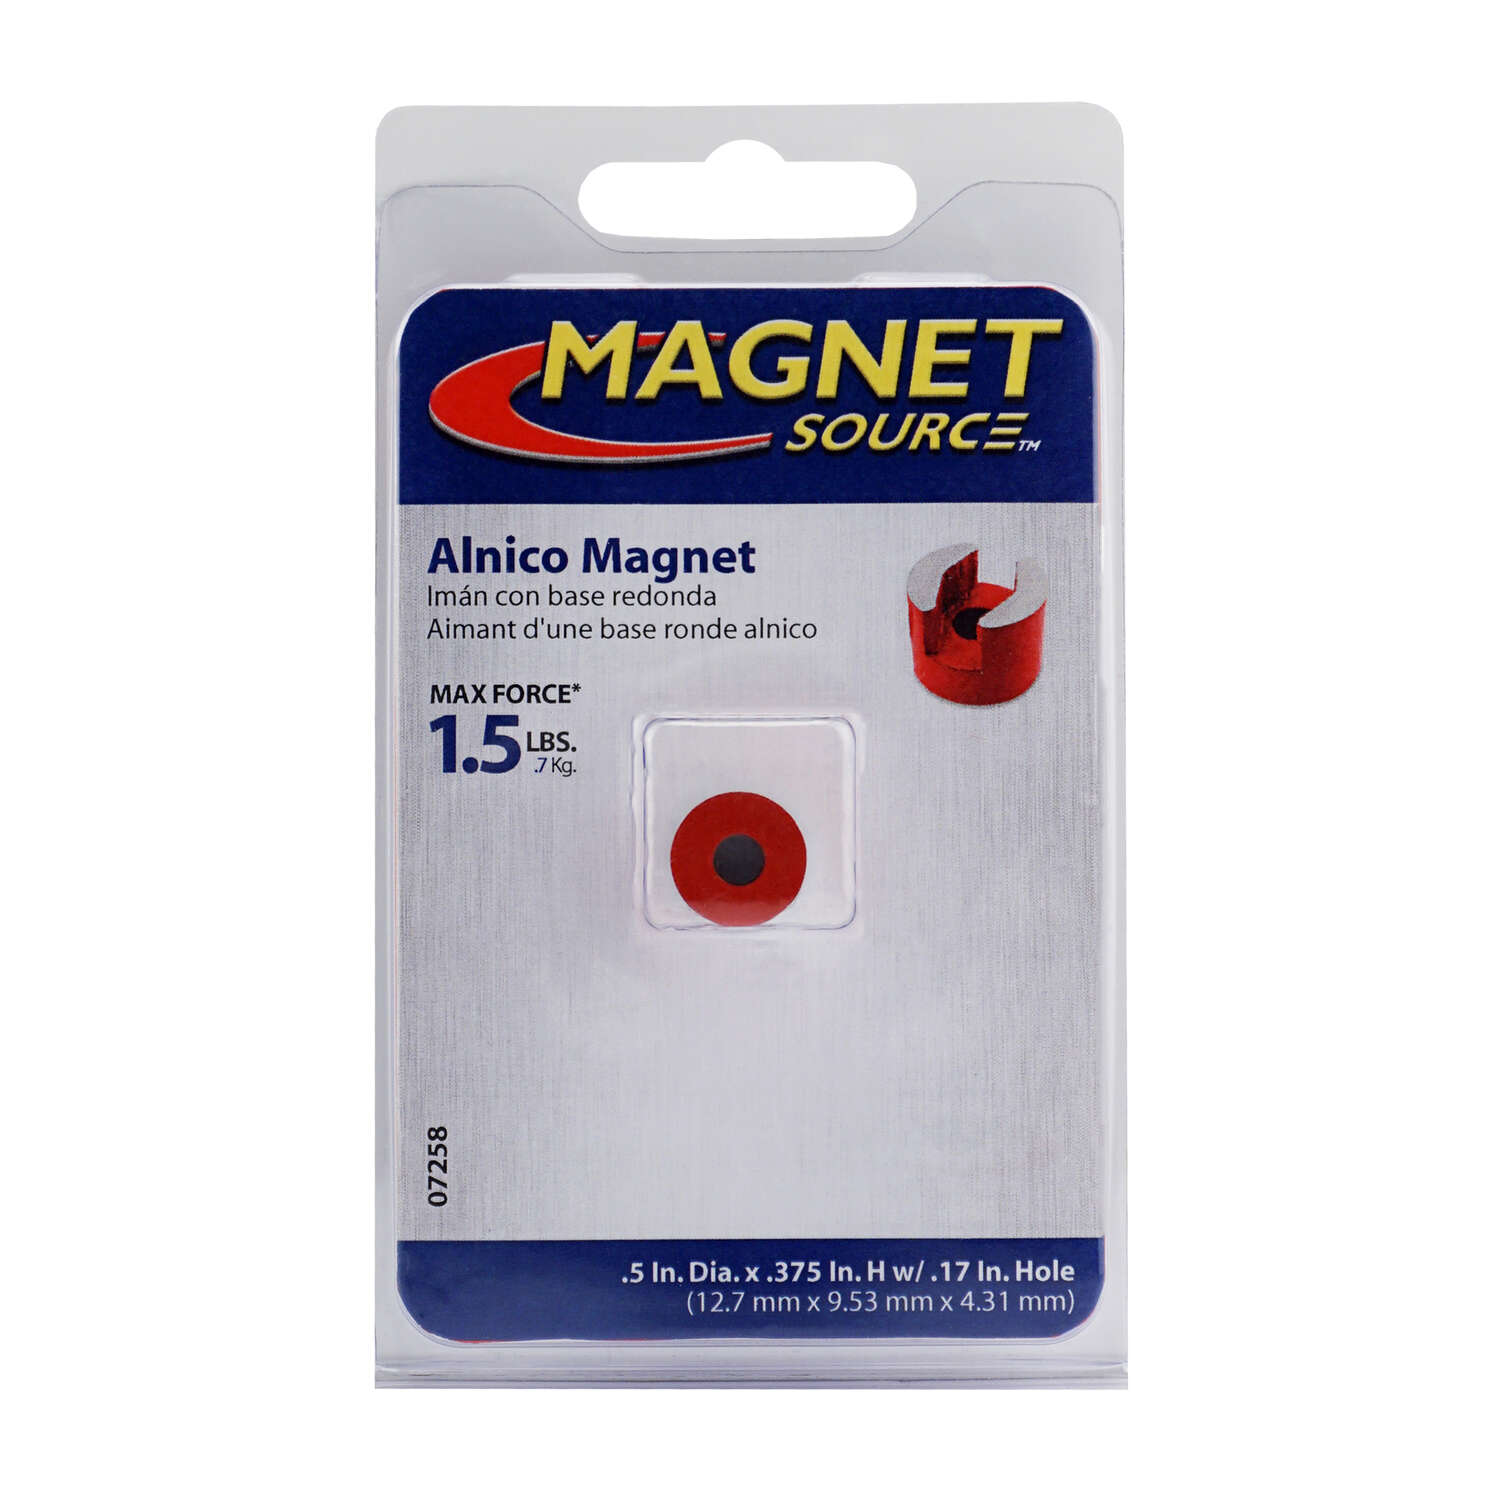 Master Magnetics  The Magnet Source  .375 Dia. in. Alnico  Work Holding Magnet  5.5 MGOe 1.5 lb. pul